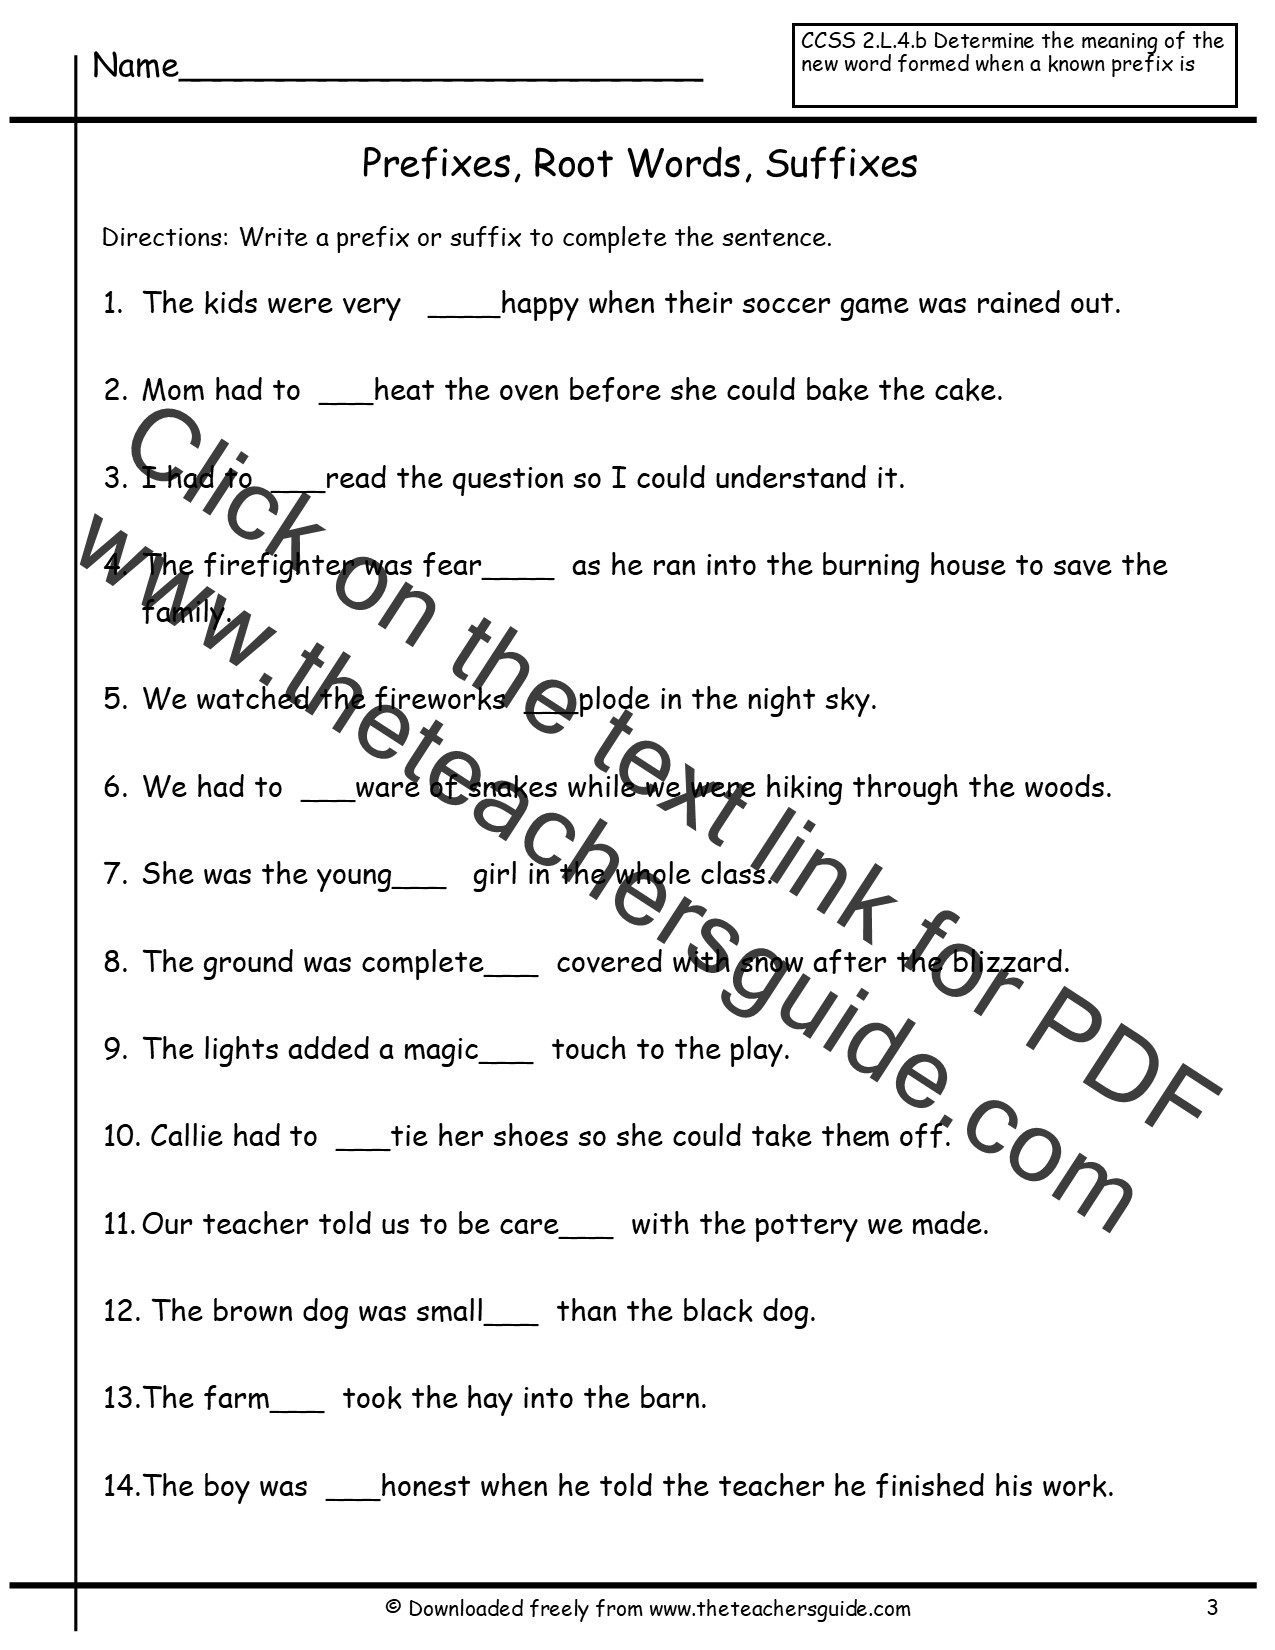 Worksheet Suffixes Worksheets free prefixes and suffixes worksheets from the teachers guide worksheet